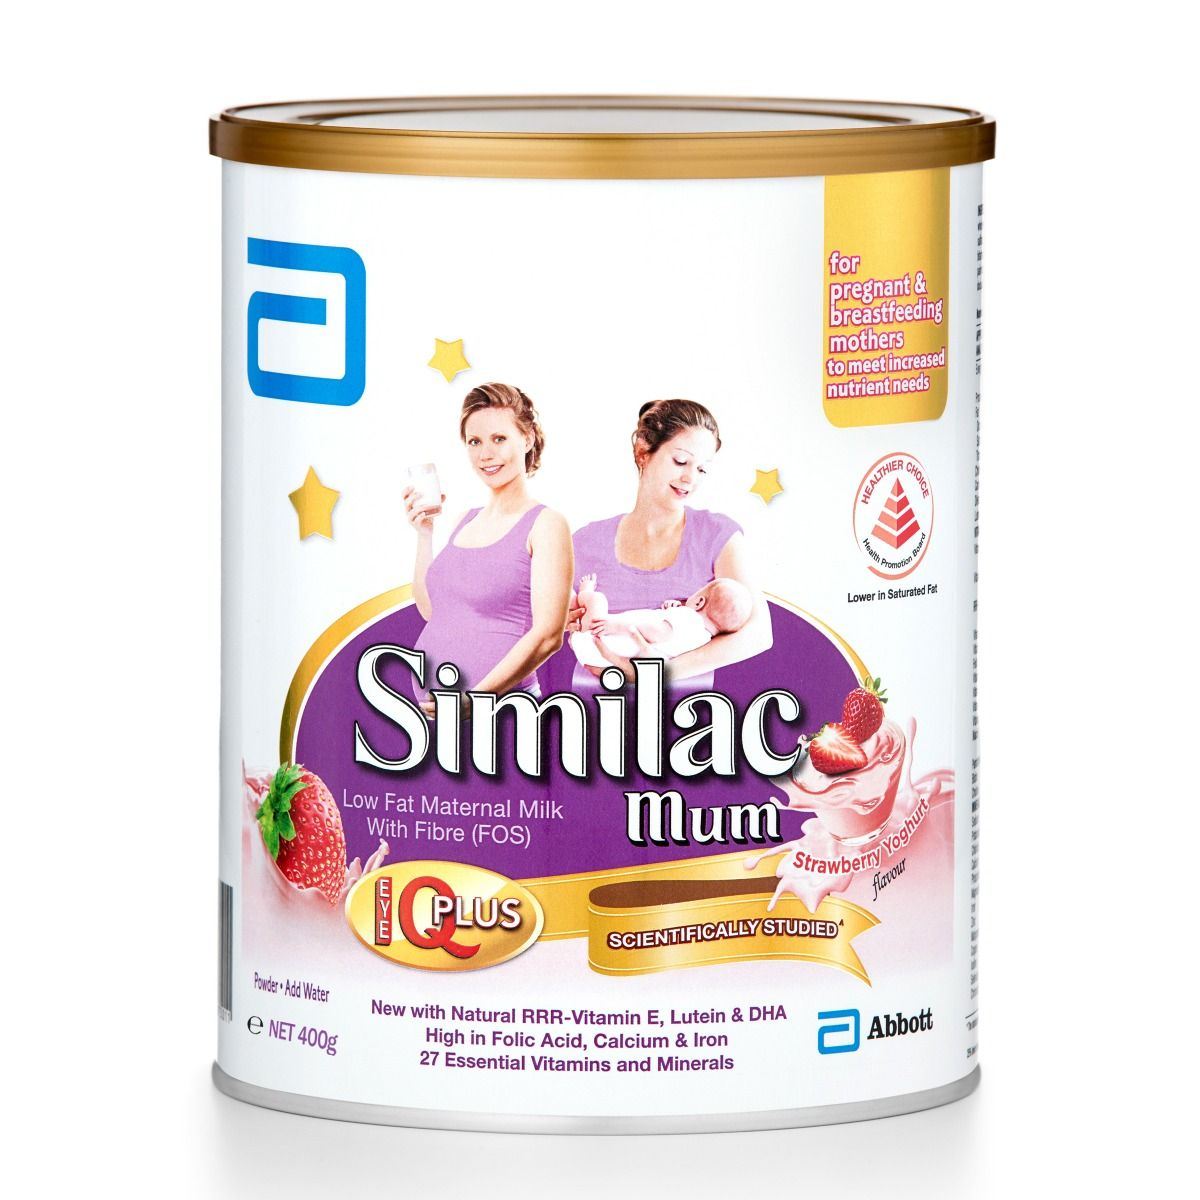 Similac Mum Eye-Q(IQ) Strawberry Yoghurt 400g